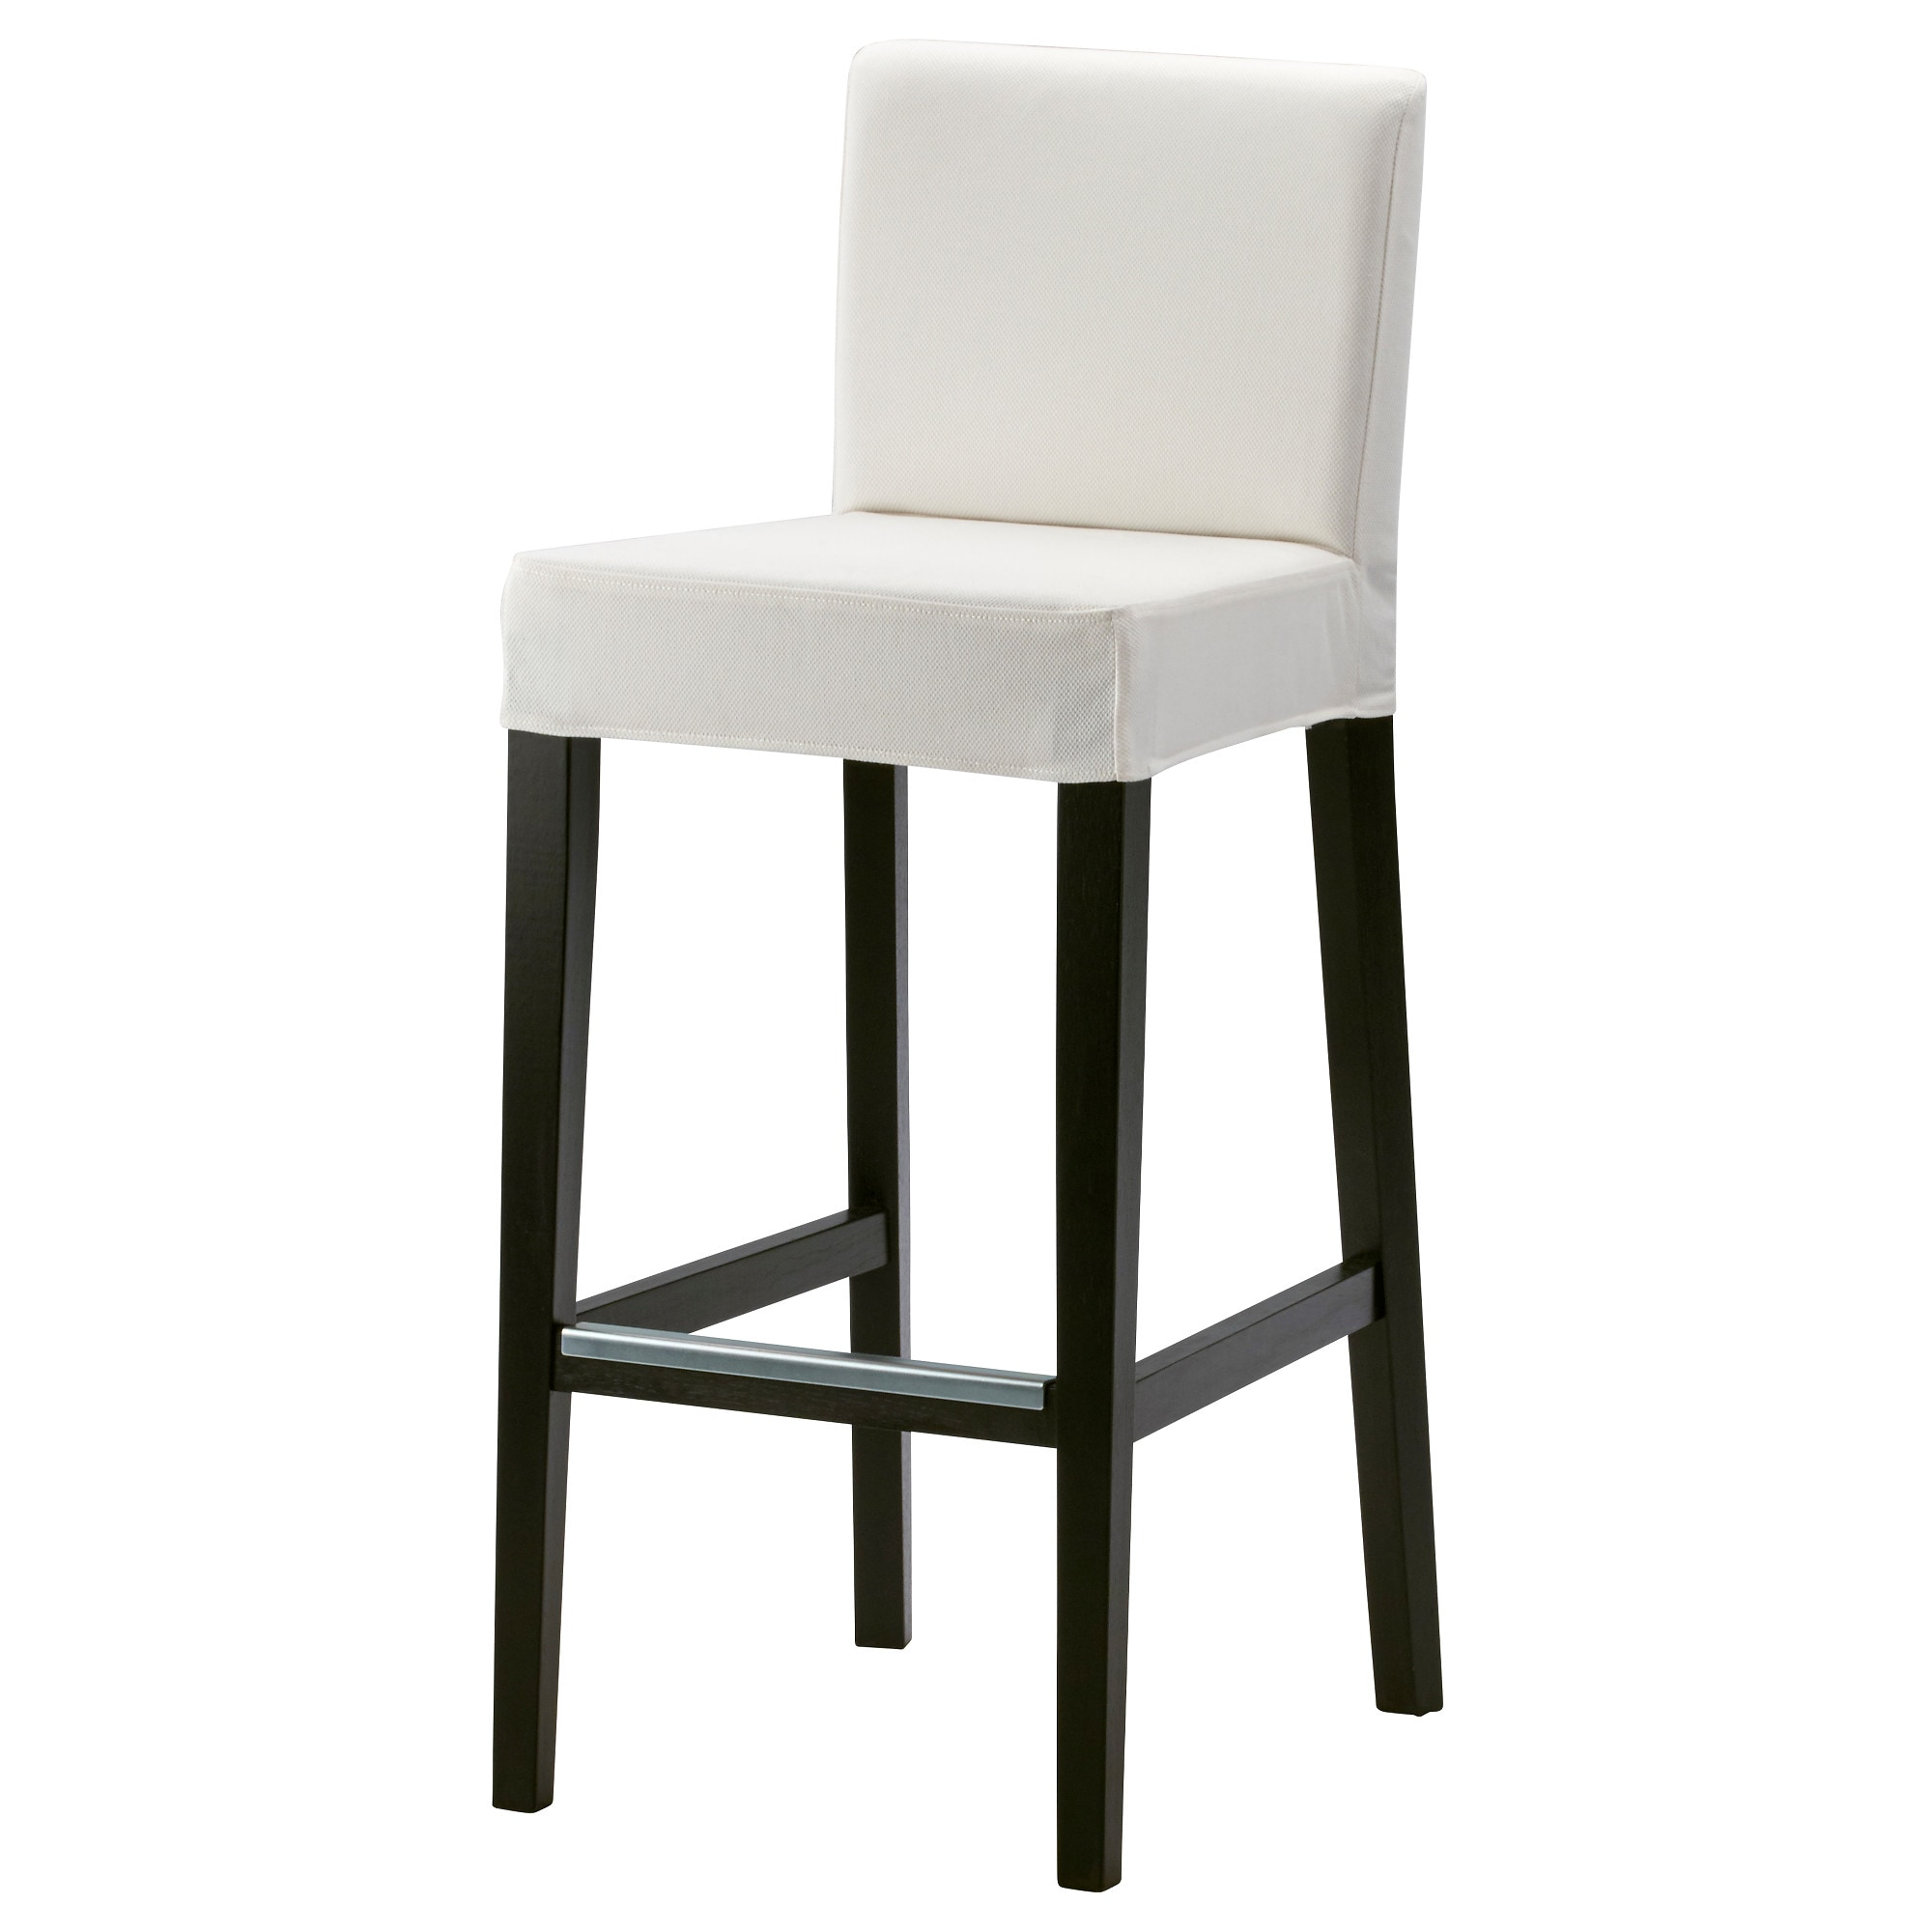 HENRIKSDAL bar stool with backrest  brown black  Gr sbo white Tested for   220Bar Stools   IKEA. High Back Dining Chairs Ikea. Home Design Ideas